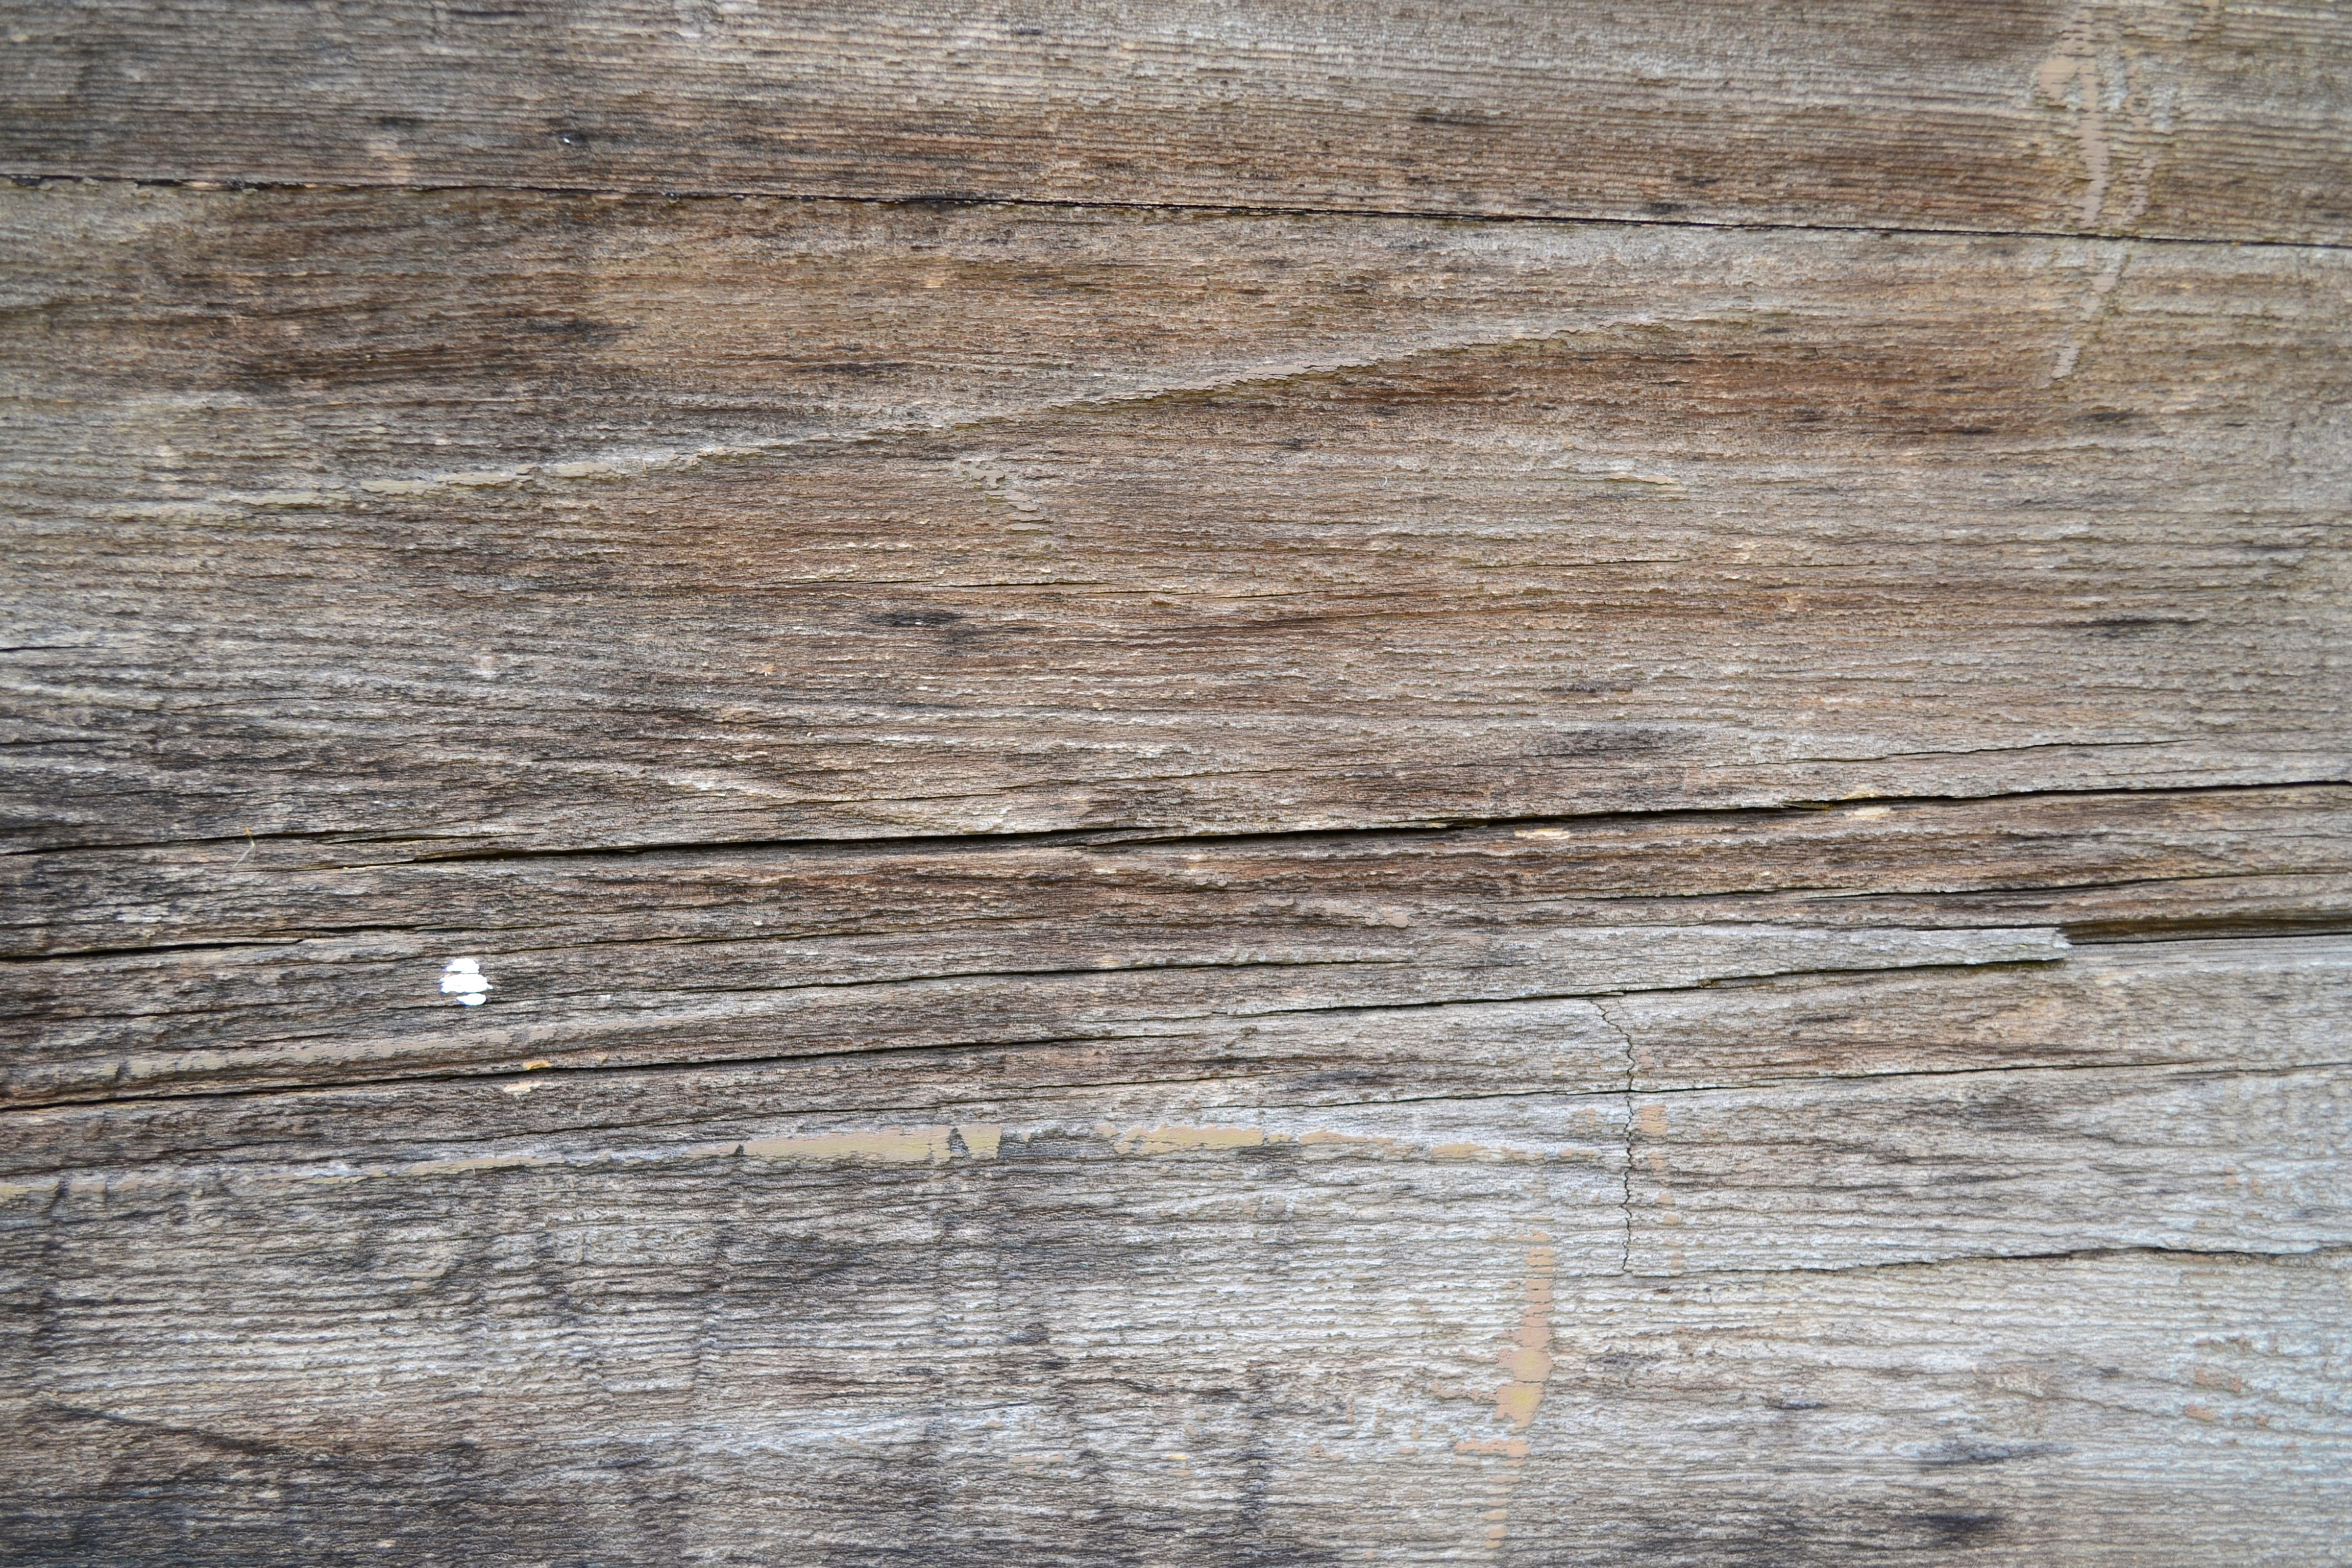 old wood texture - Recherche Google | Textures - Wood ...